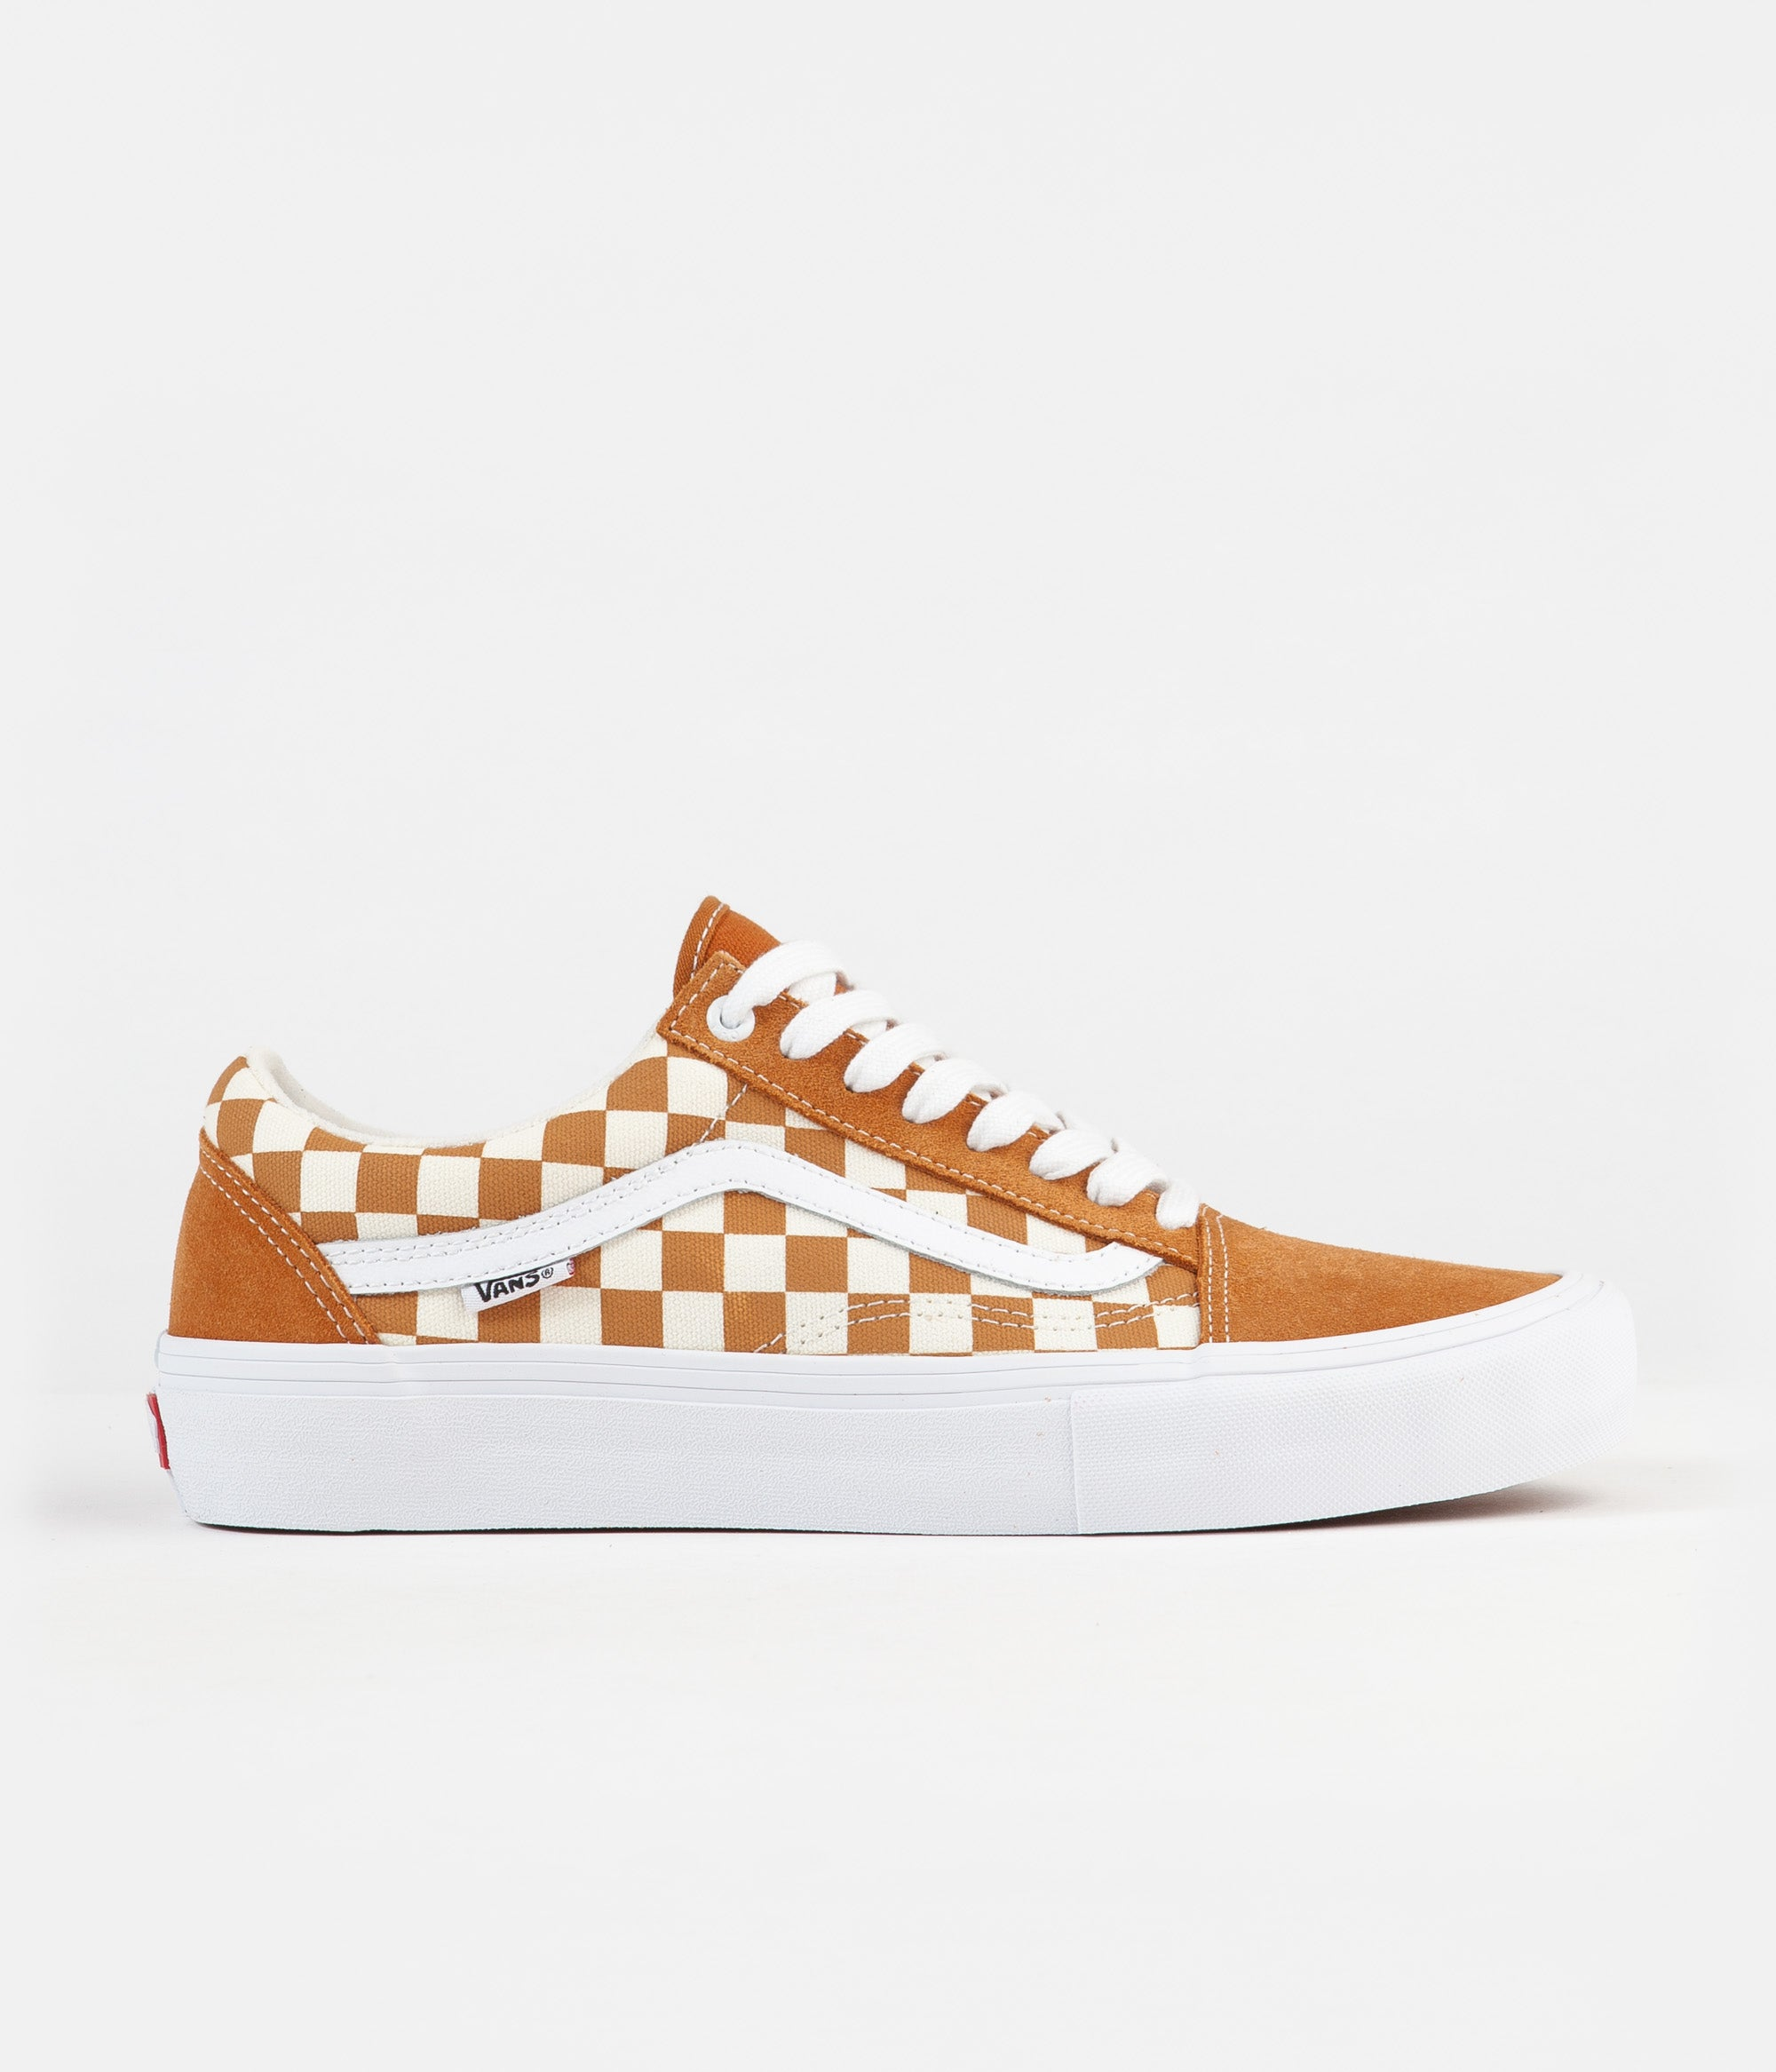 los angeles later another chance Vans Old Skool Pro Shoes - (Checkerboard) Golden Oak | Flatspot